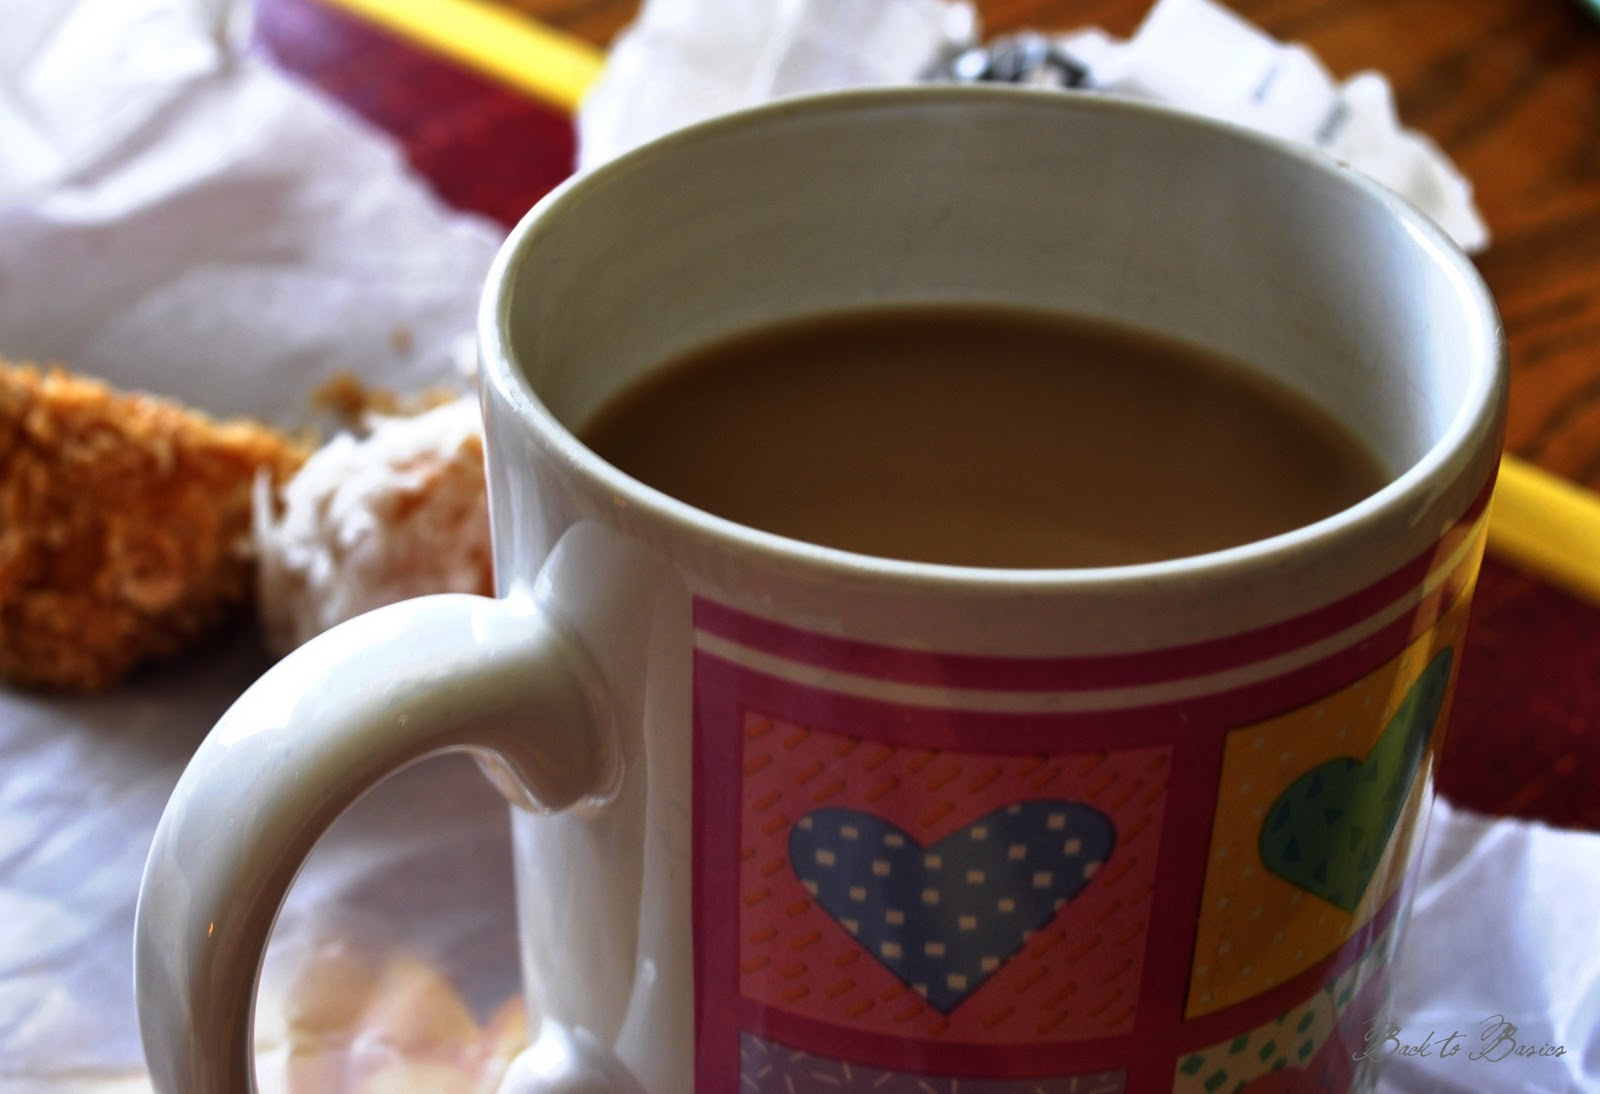 Wednesday Morning Coffee Morning, sipping coffee, Wednesday Coffee Quotes